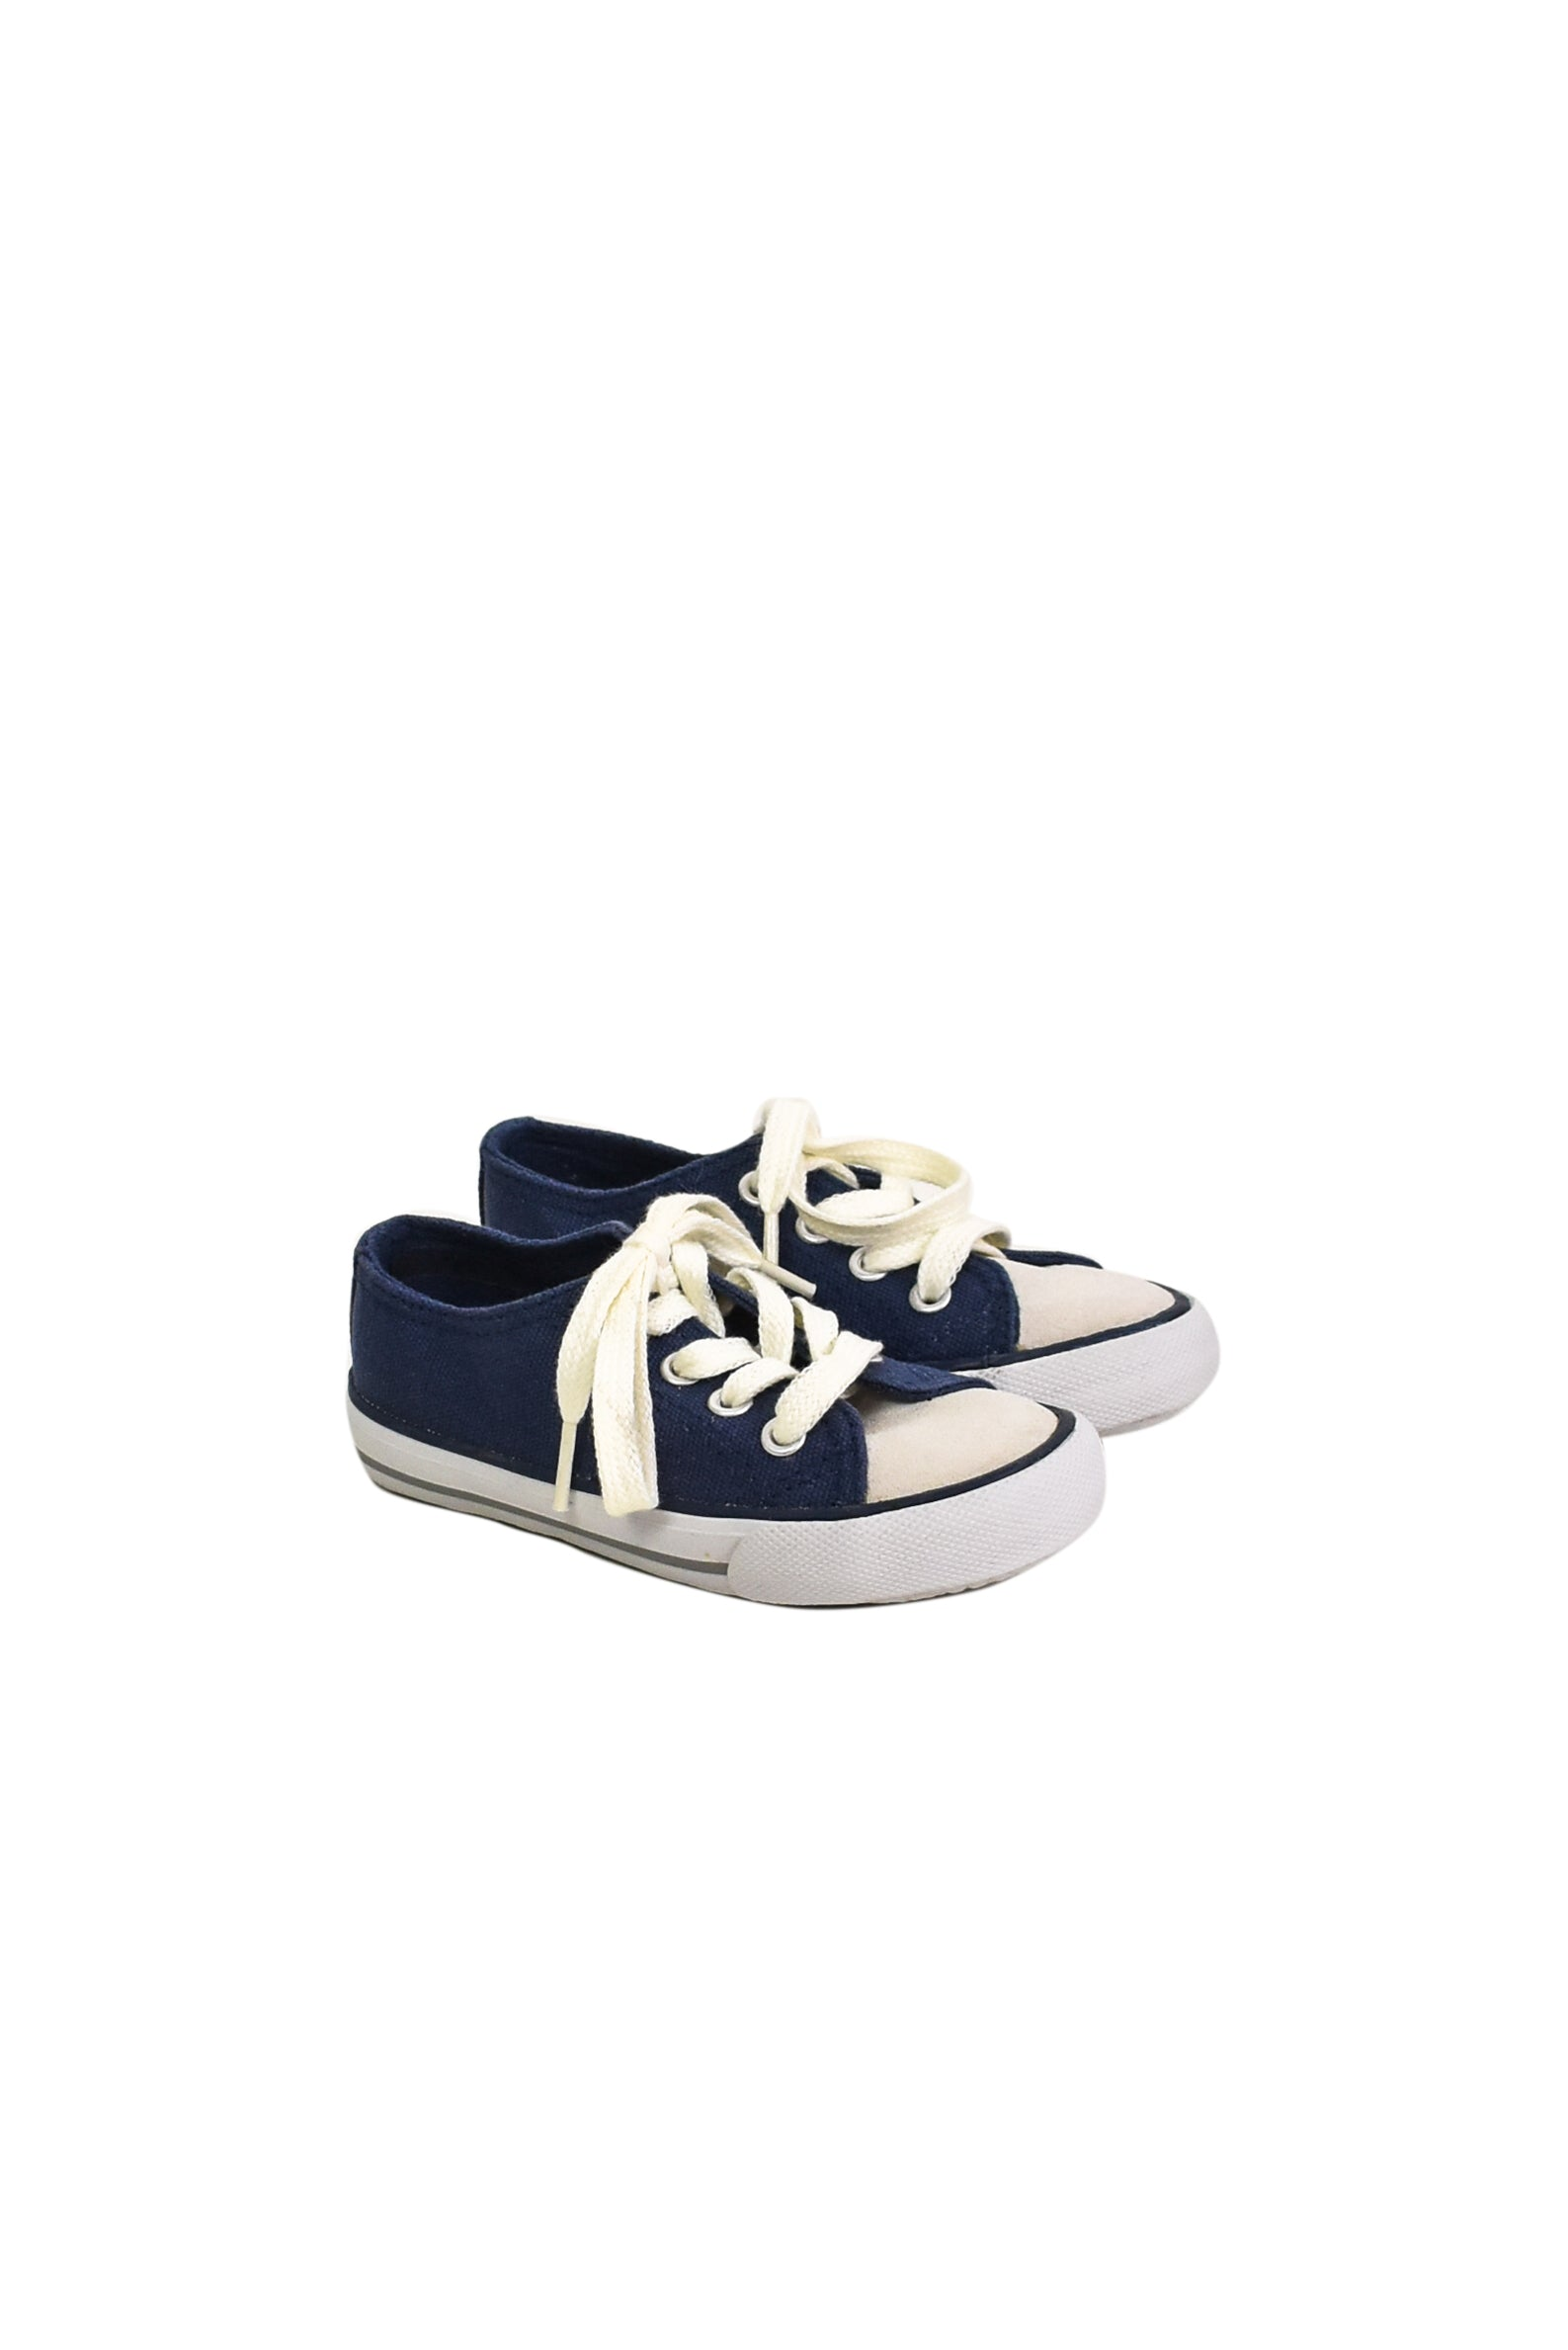 10013727 Jacadi Kids ~Shoes 3T (EU24) at Retykle